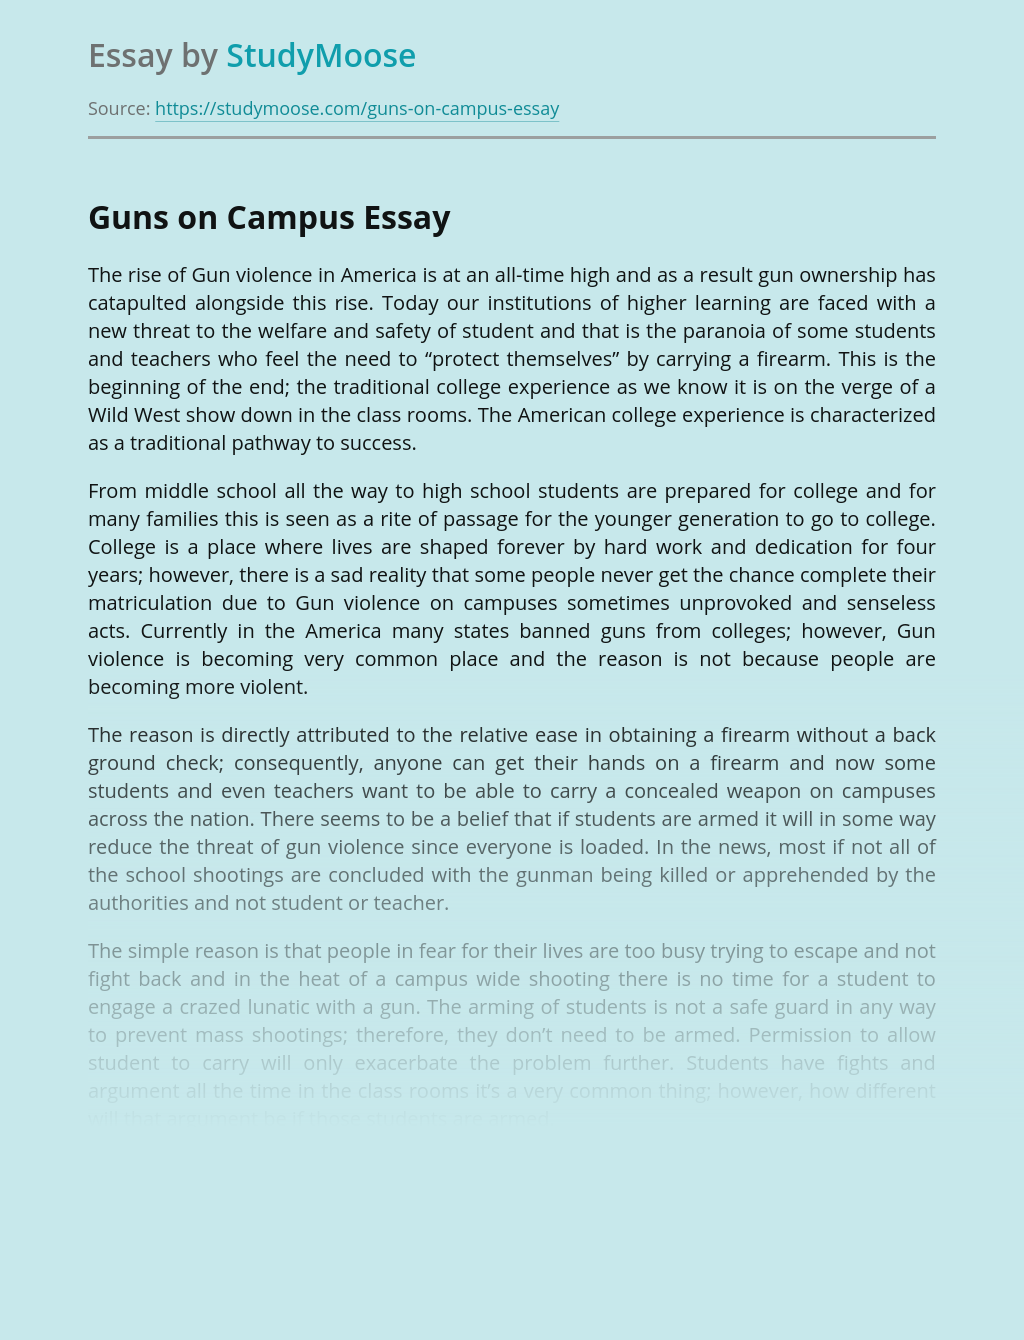 Violence and Guns on Campus